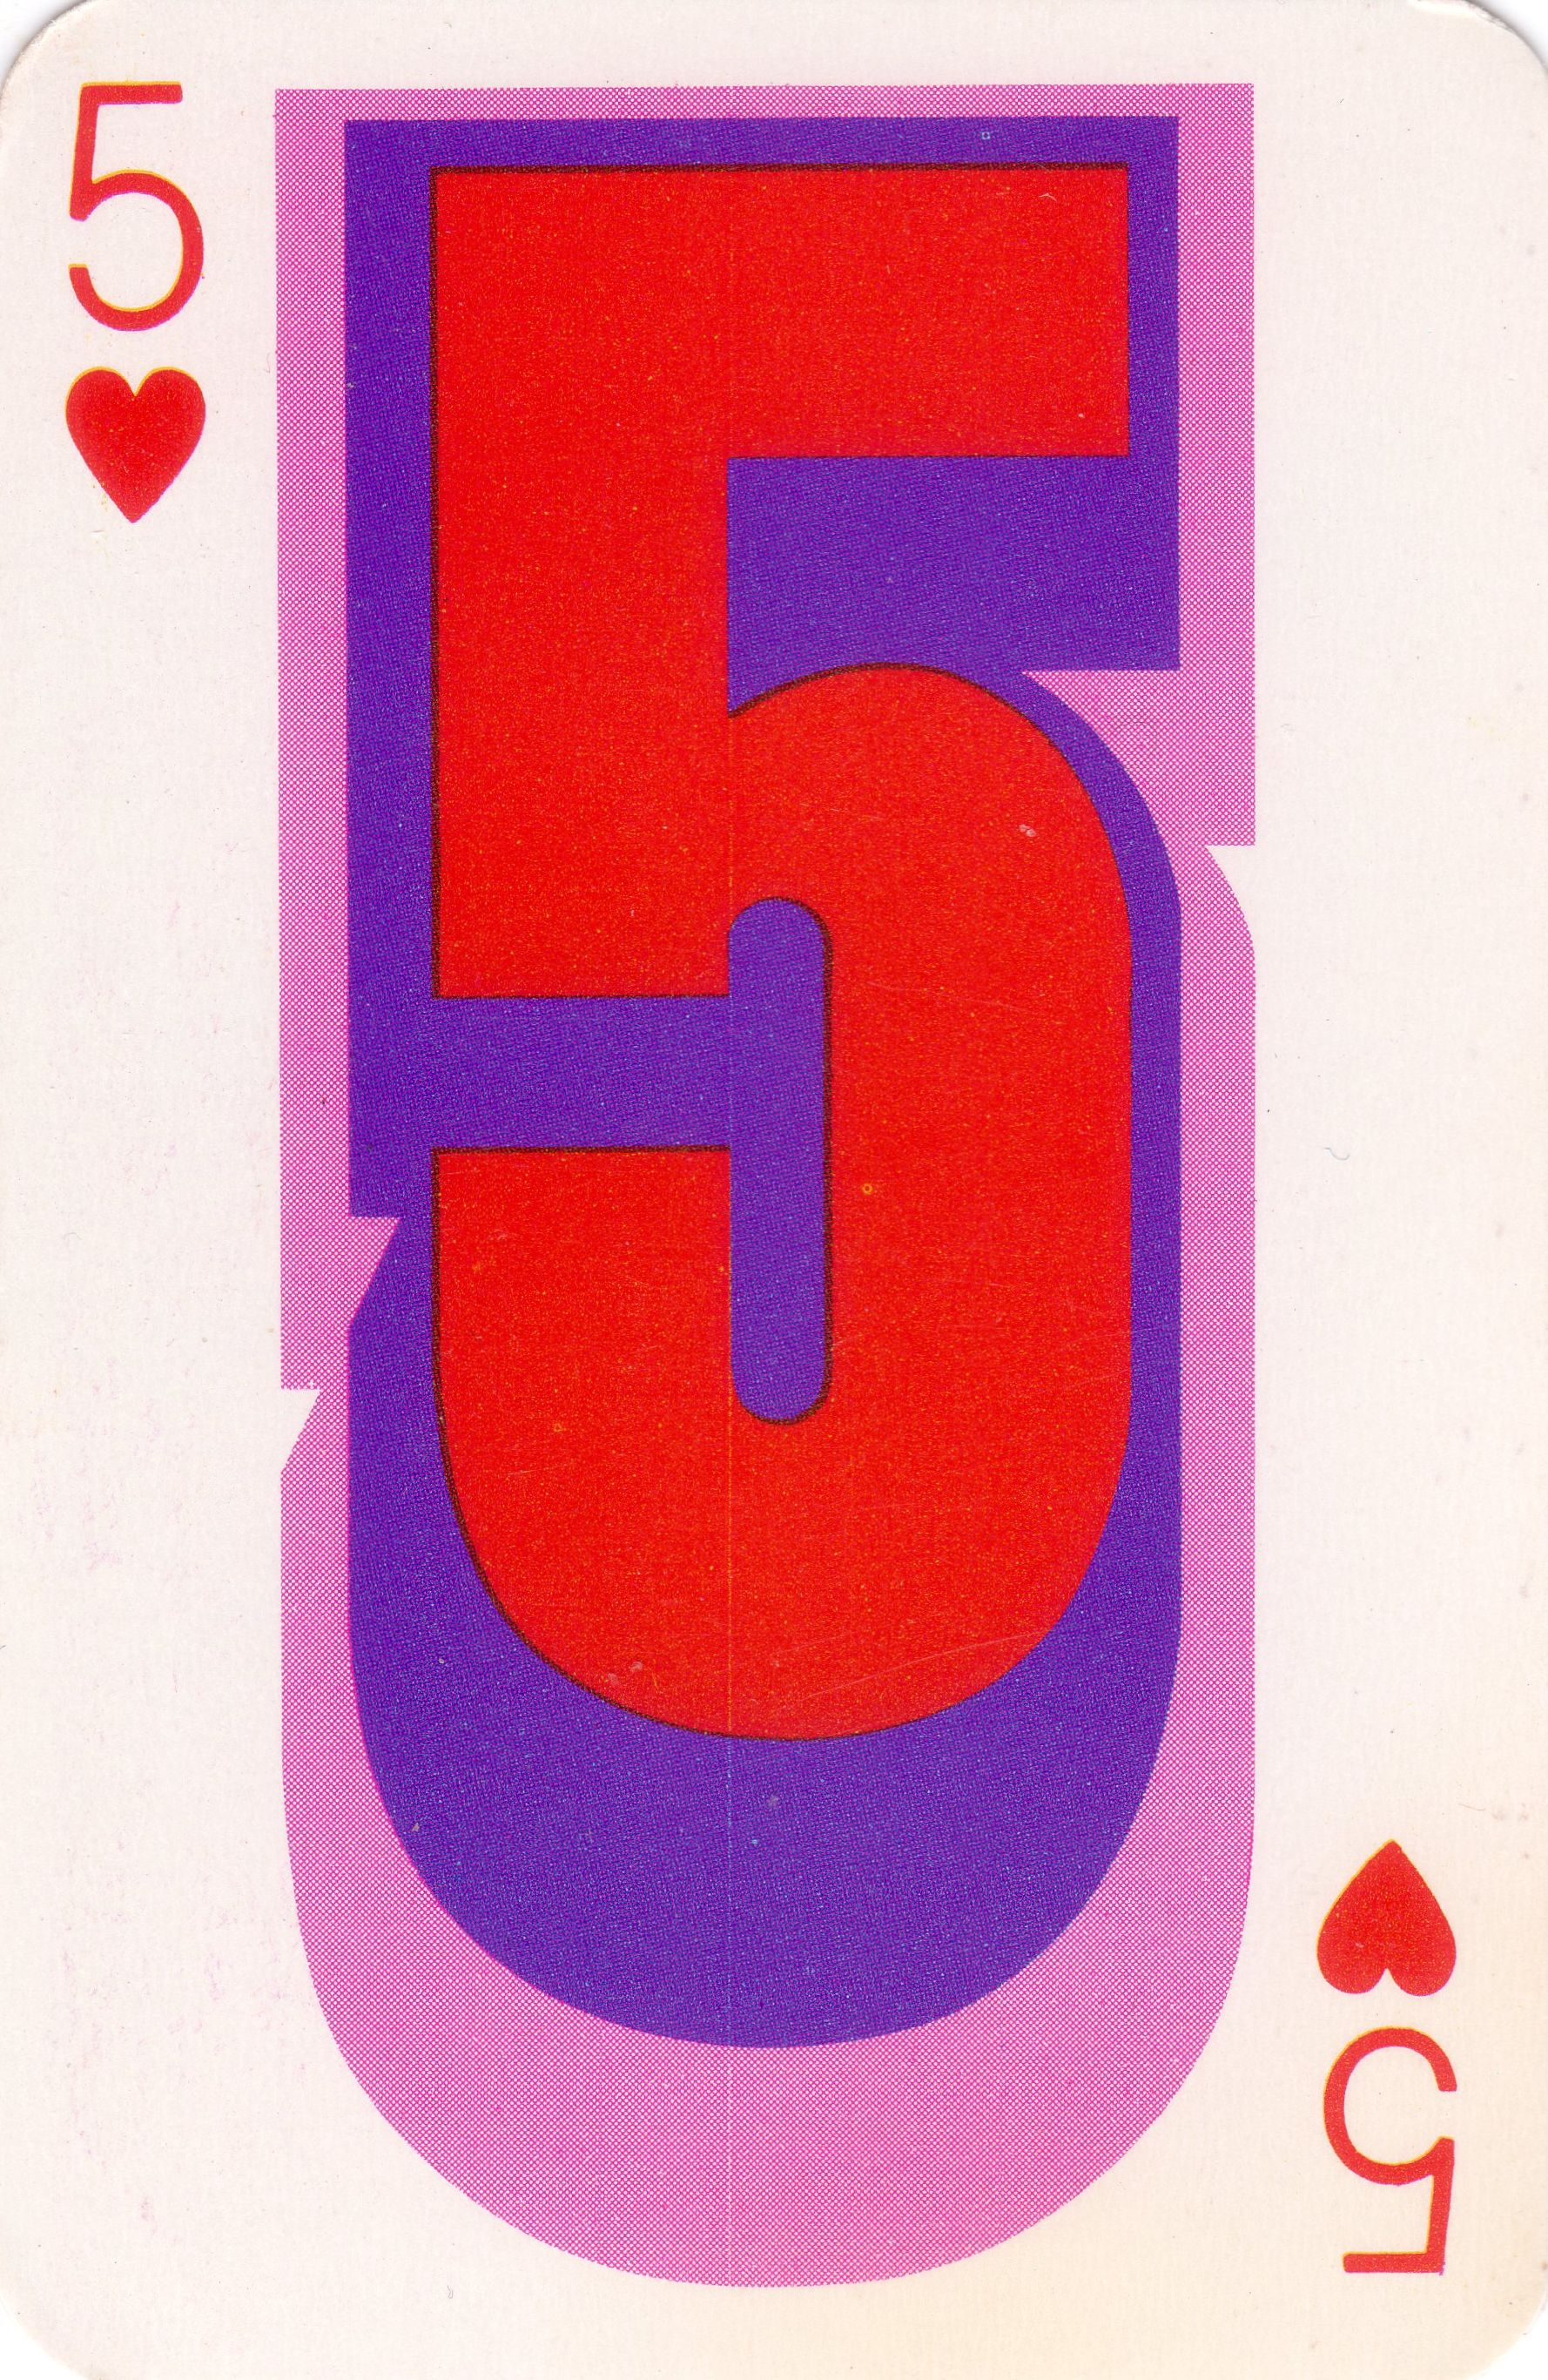 1960s playing cards groovy-21